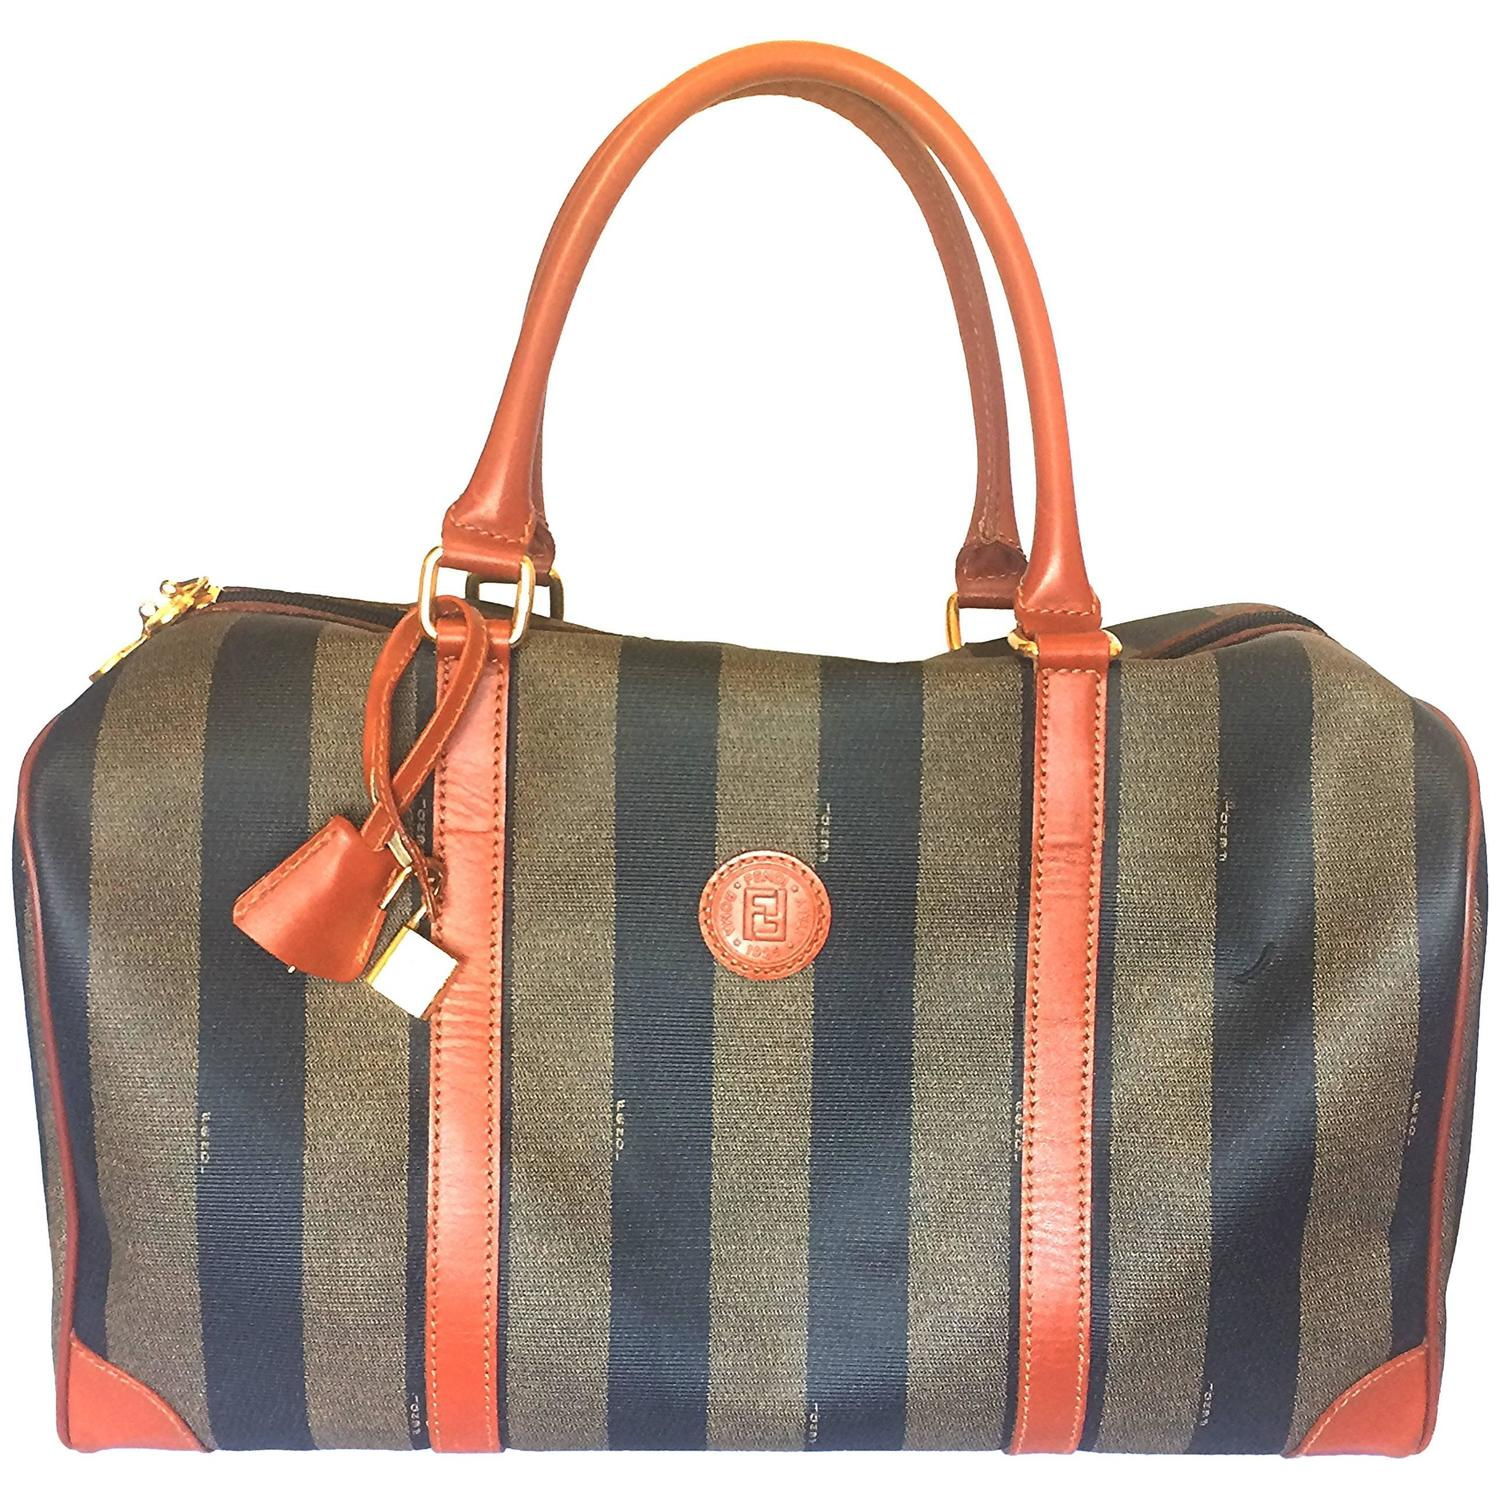 0e1b3a4f90ff Vintage FENDI pecan stripe travel bag, large purse with brown leather  trimming. at 1stdibs